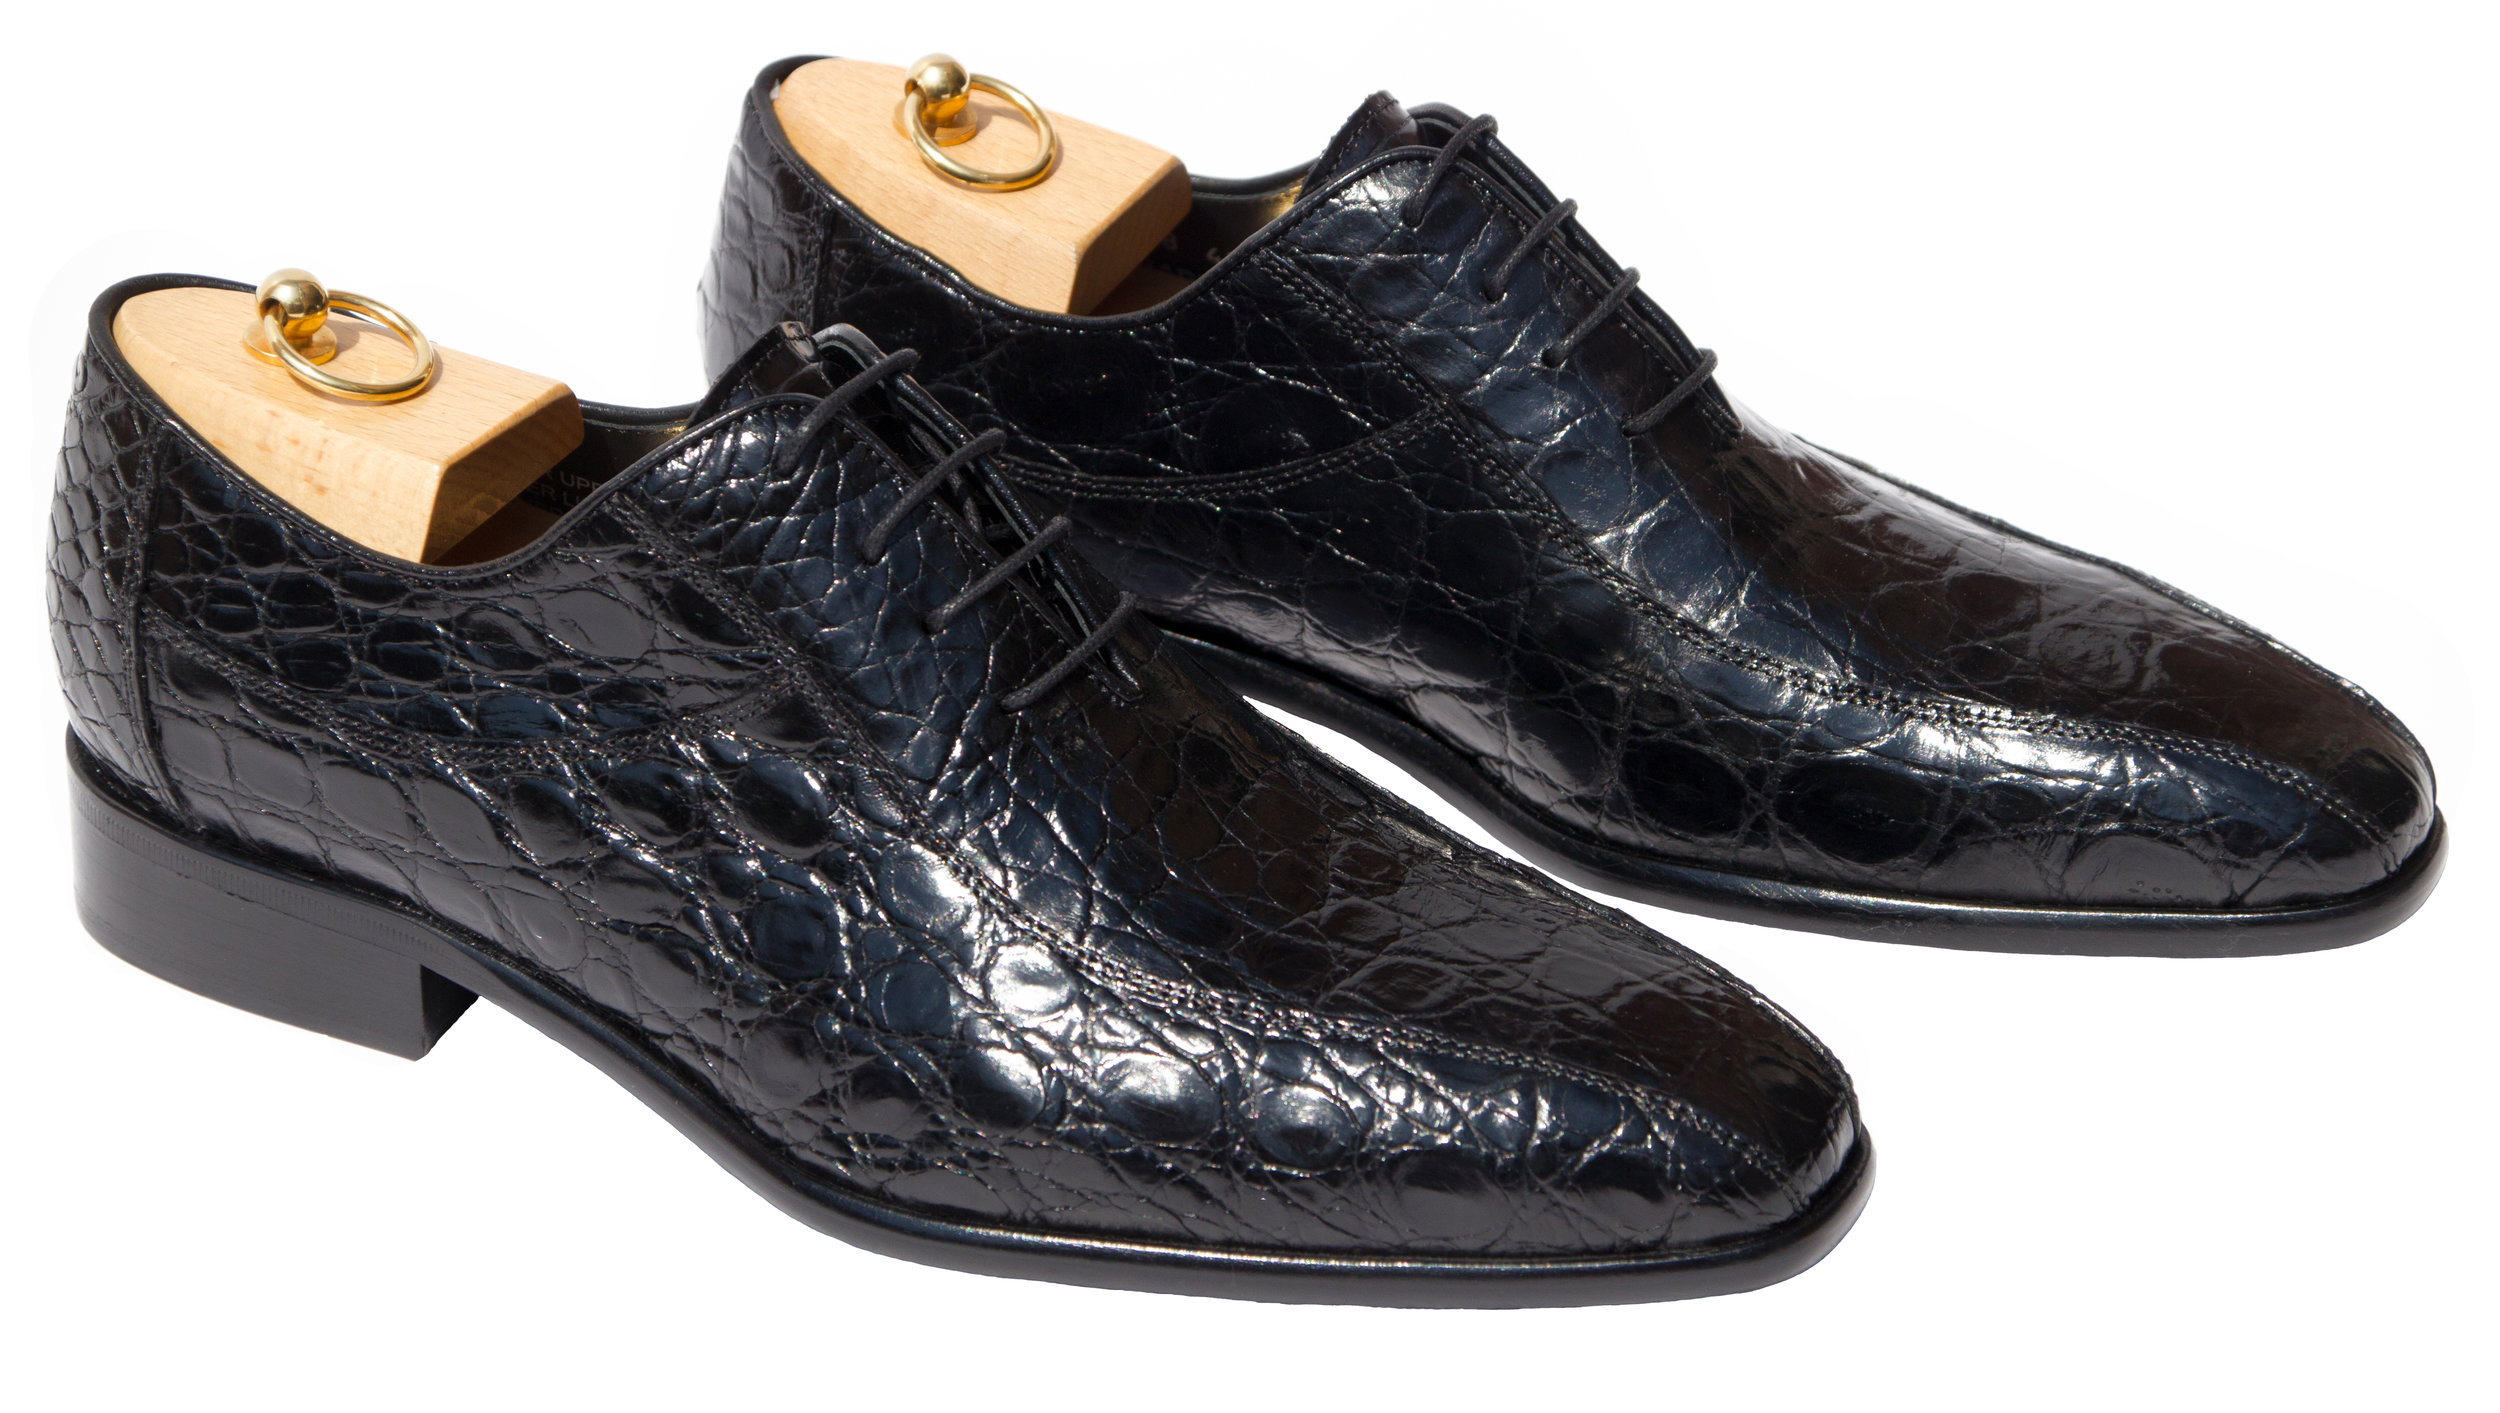 Style # H778: Black  Alligator Flanks Balmoral Lace-Up  Sizes available: 8 to 15 US, including half sizes